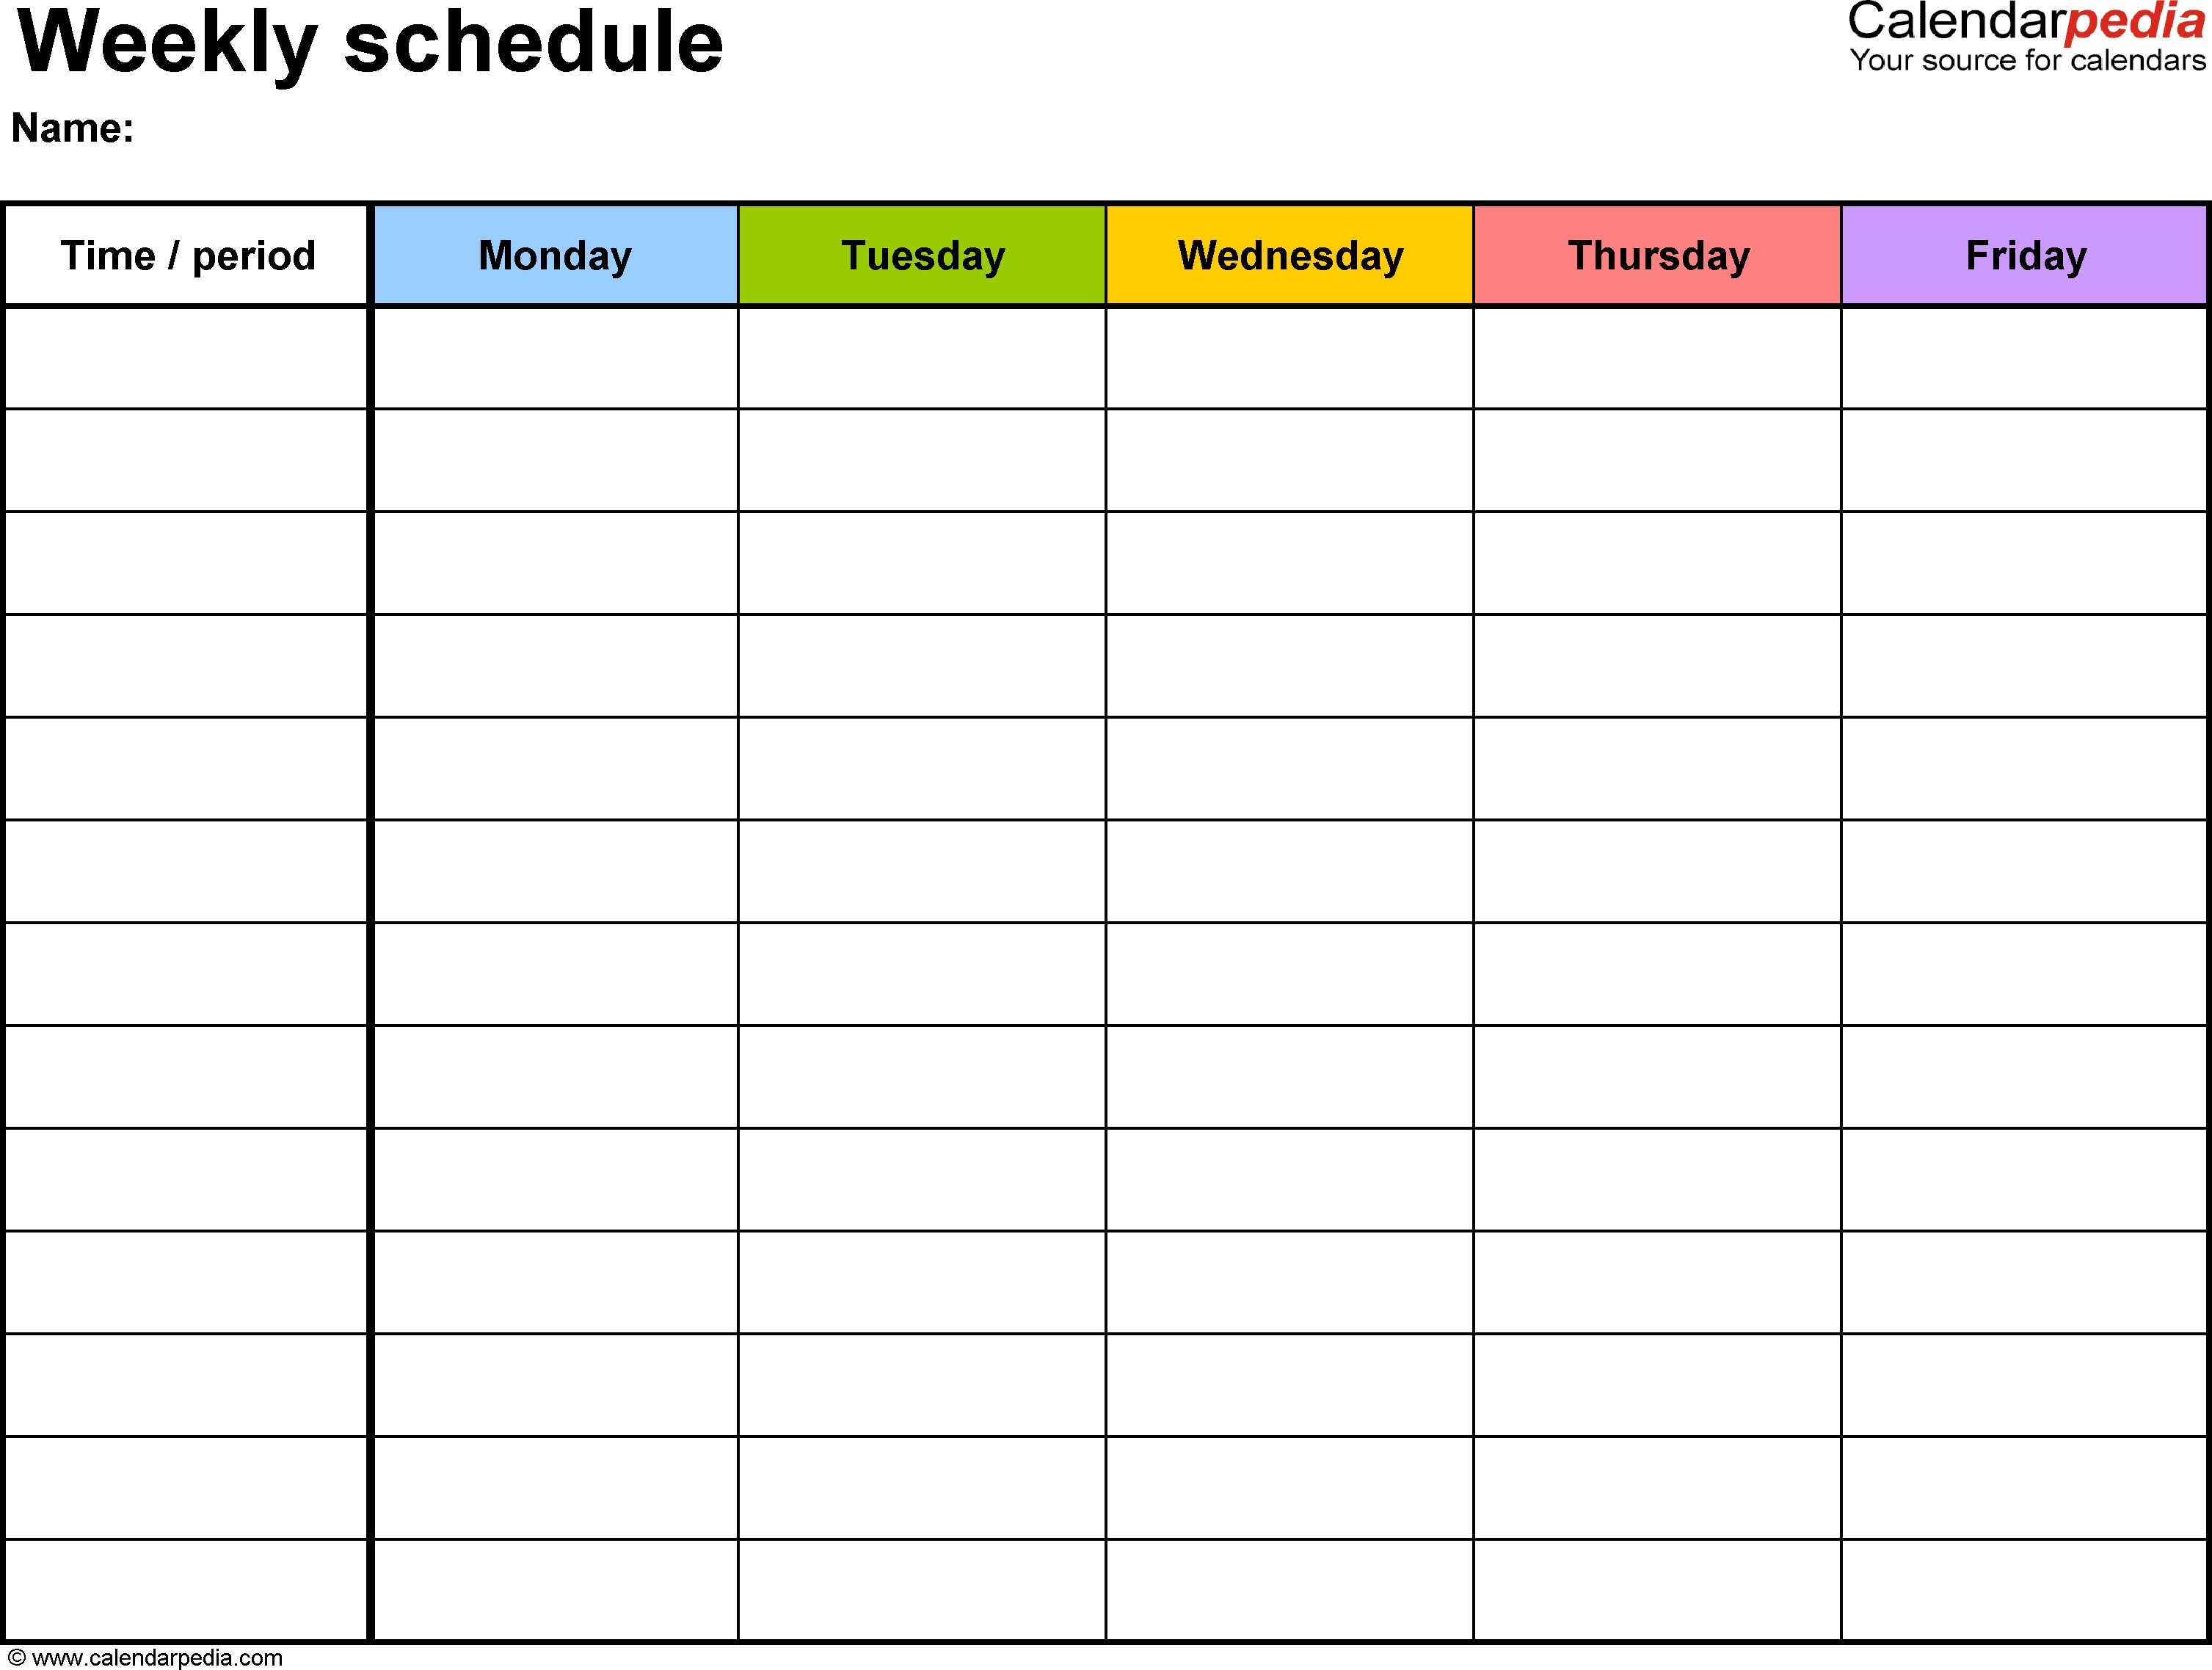 Free Weekly Schedule Templates For Word - 18 Templates-Monday Sunday Calendar Template